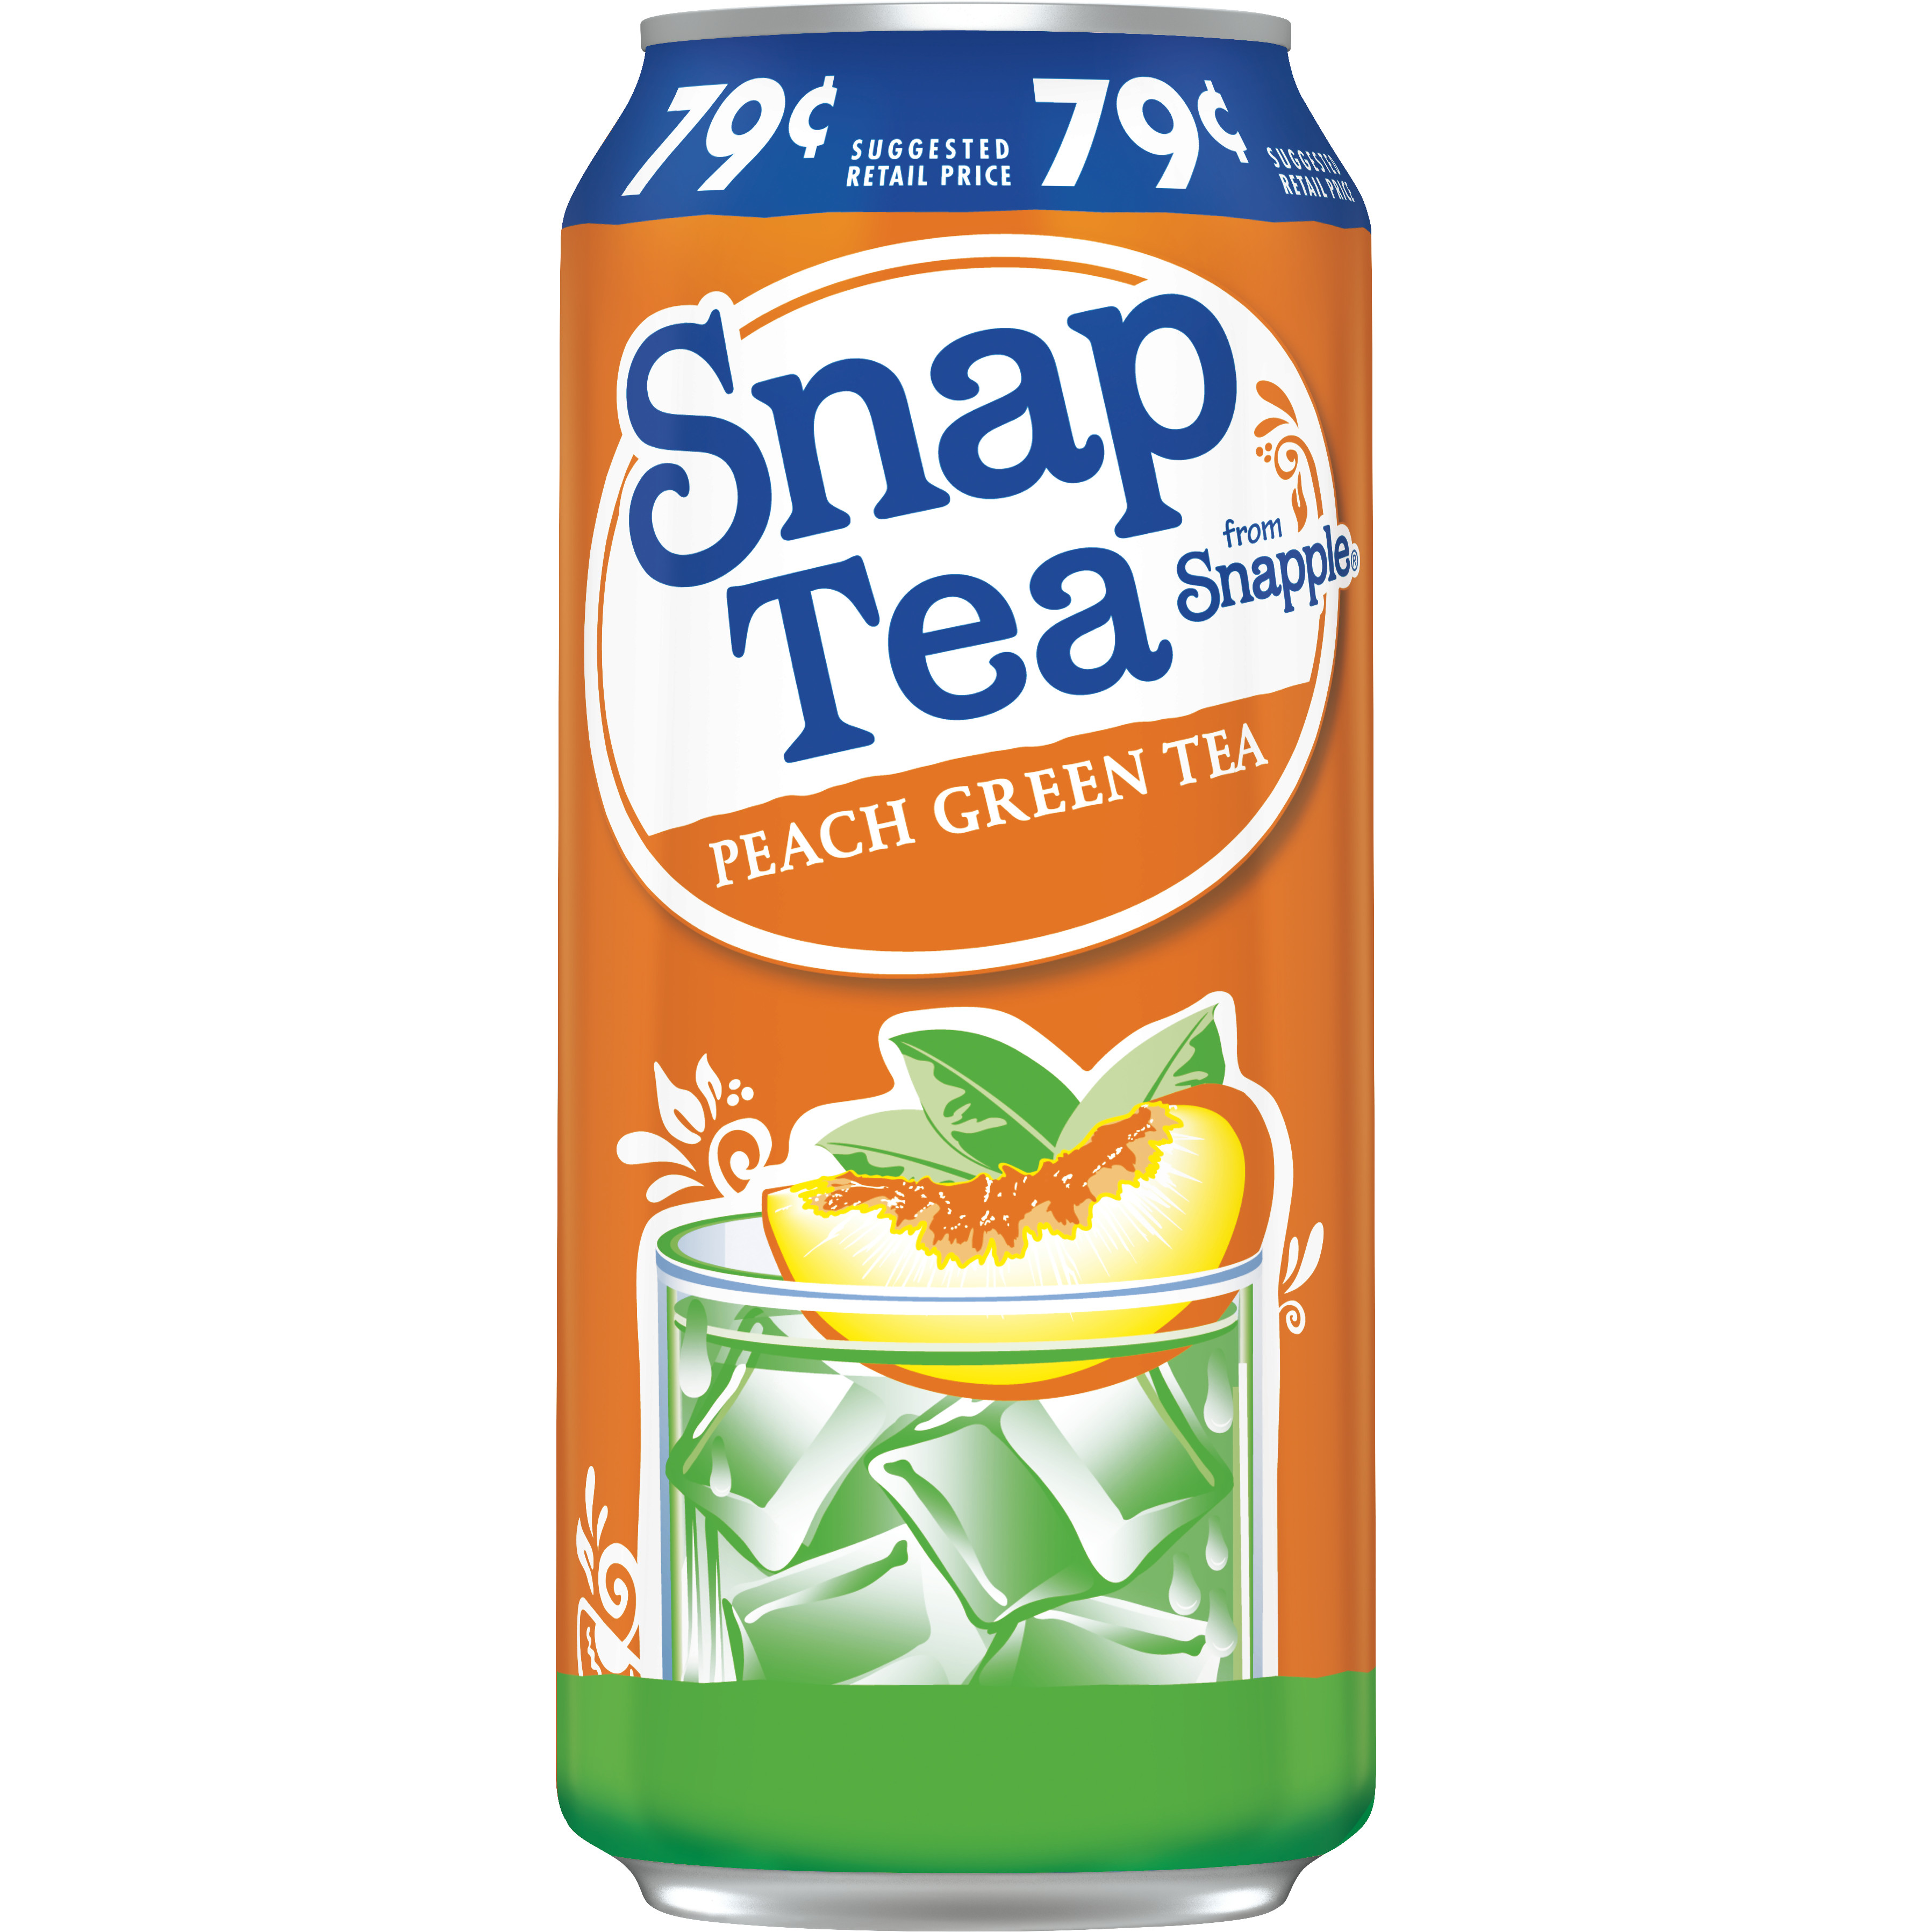 SnapTea Peach Green Tea, 16 fl oz